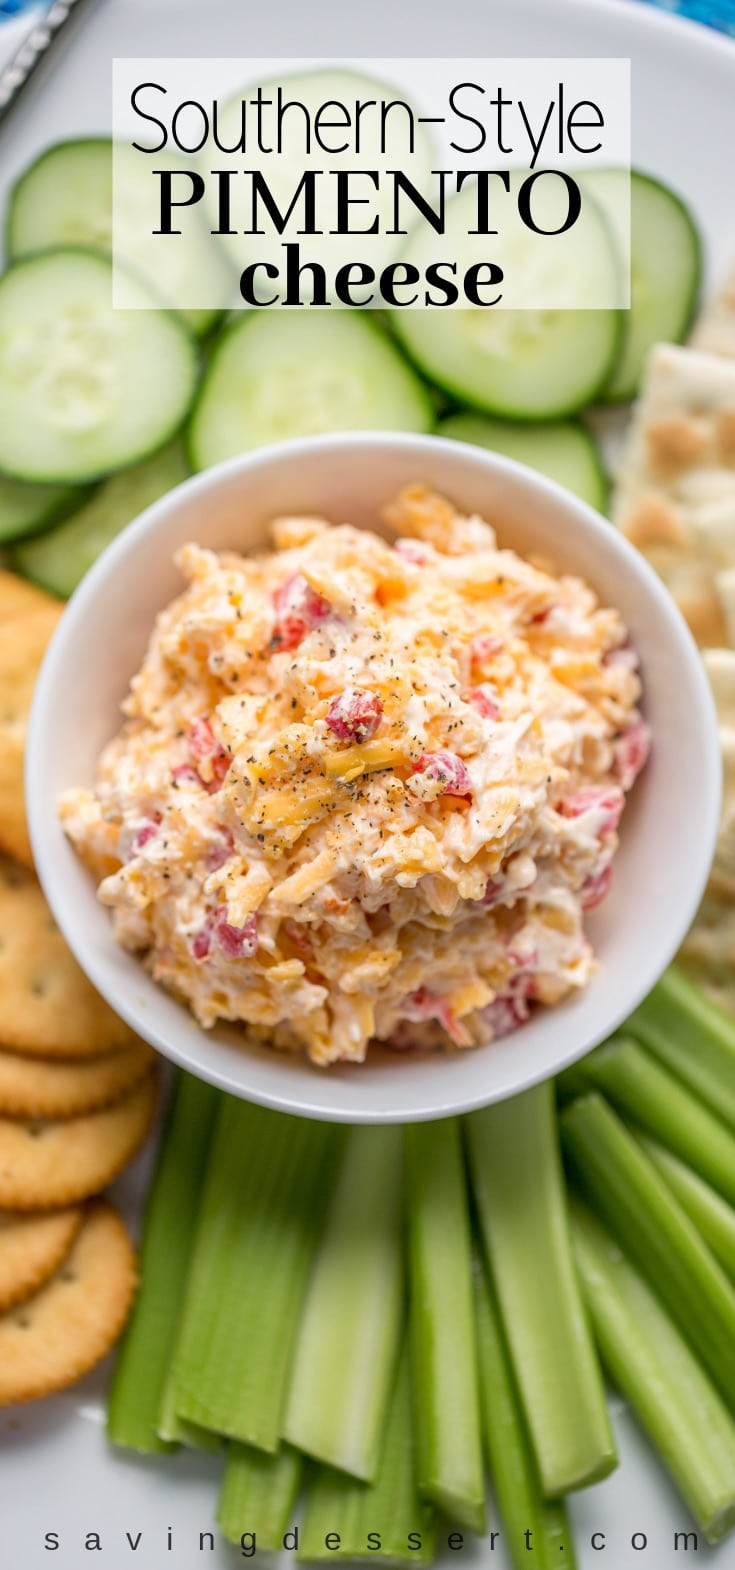 Southern-Style Pimento Cheese spread ... the quintessential southern food. #pimentocheese #cheesespread #cheddarcheese #southernstyle